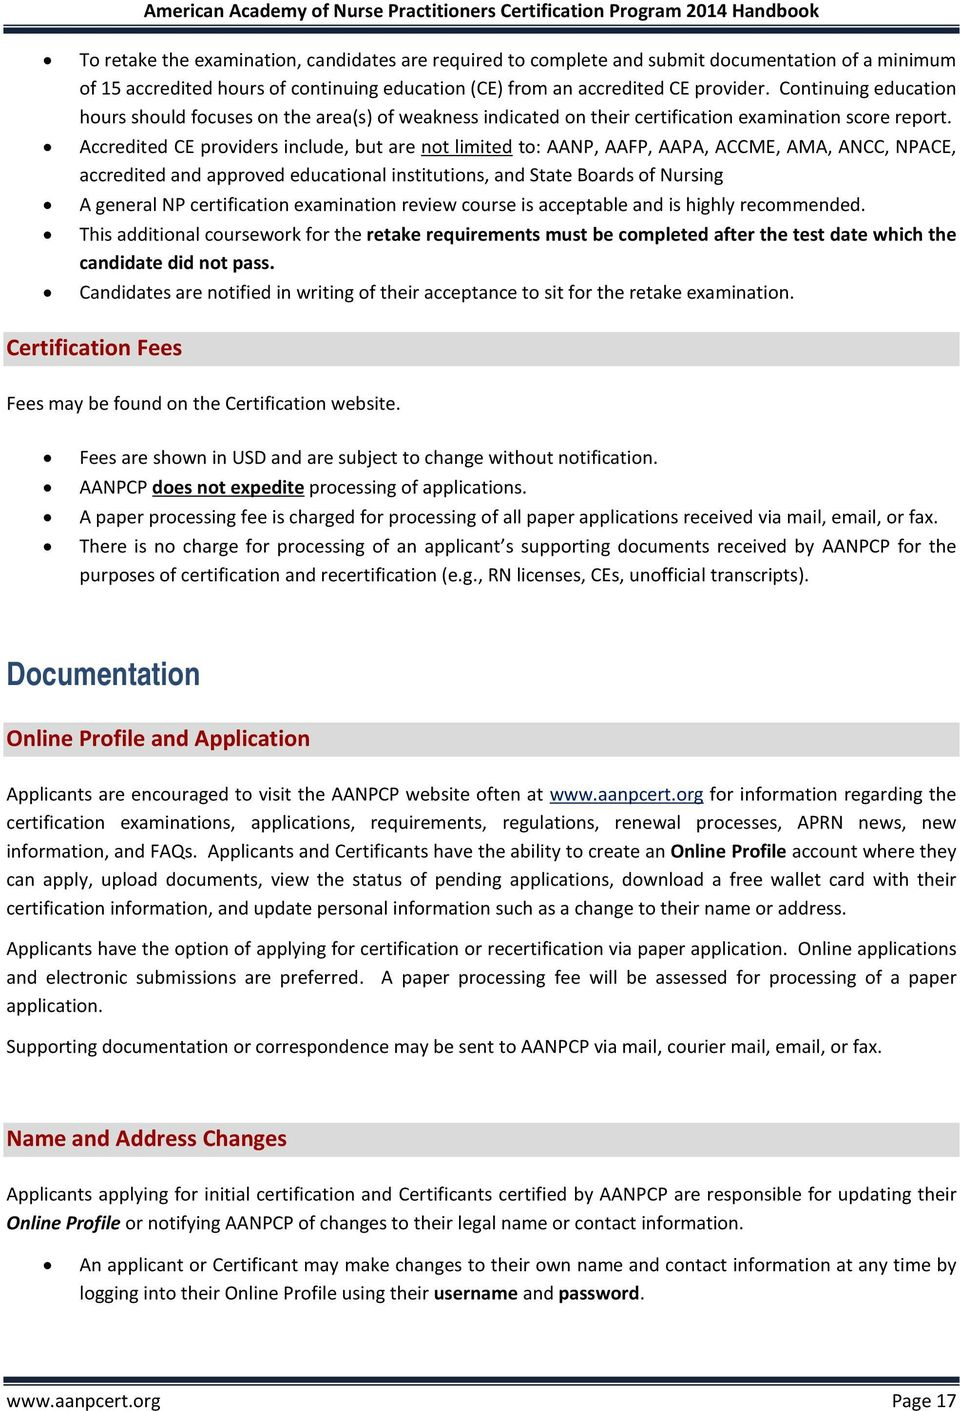 AANPCP CANDIDATE HANDBOOK and RENEWAL of CERTIFICATION